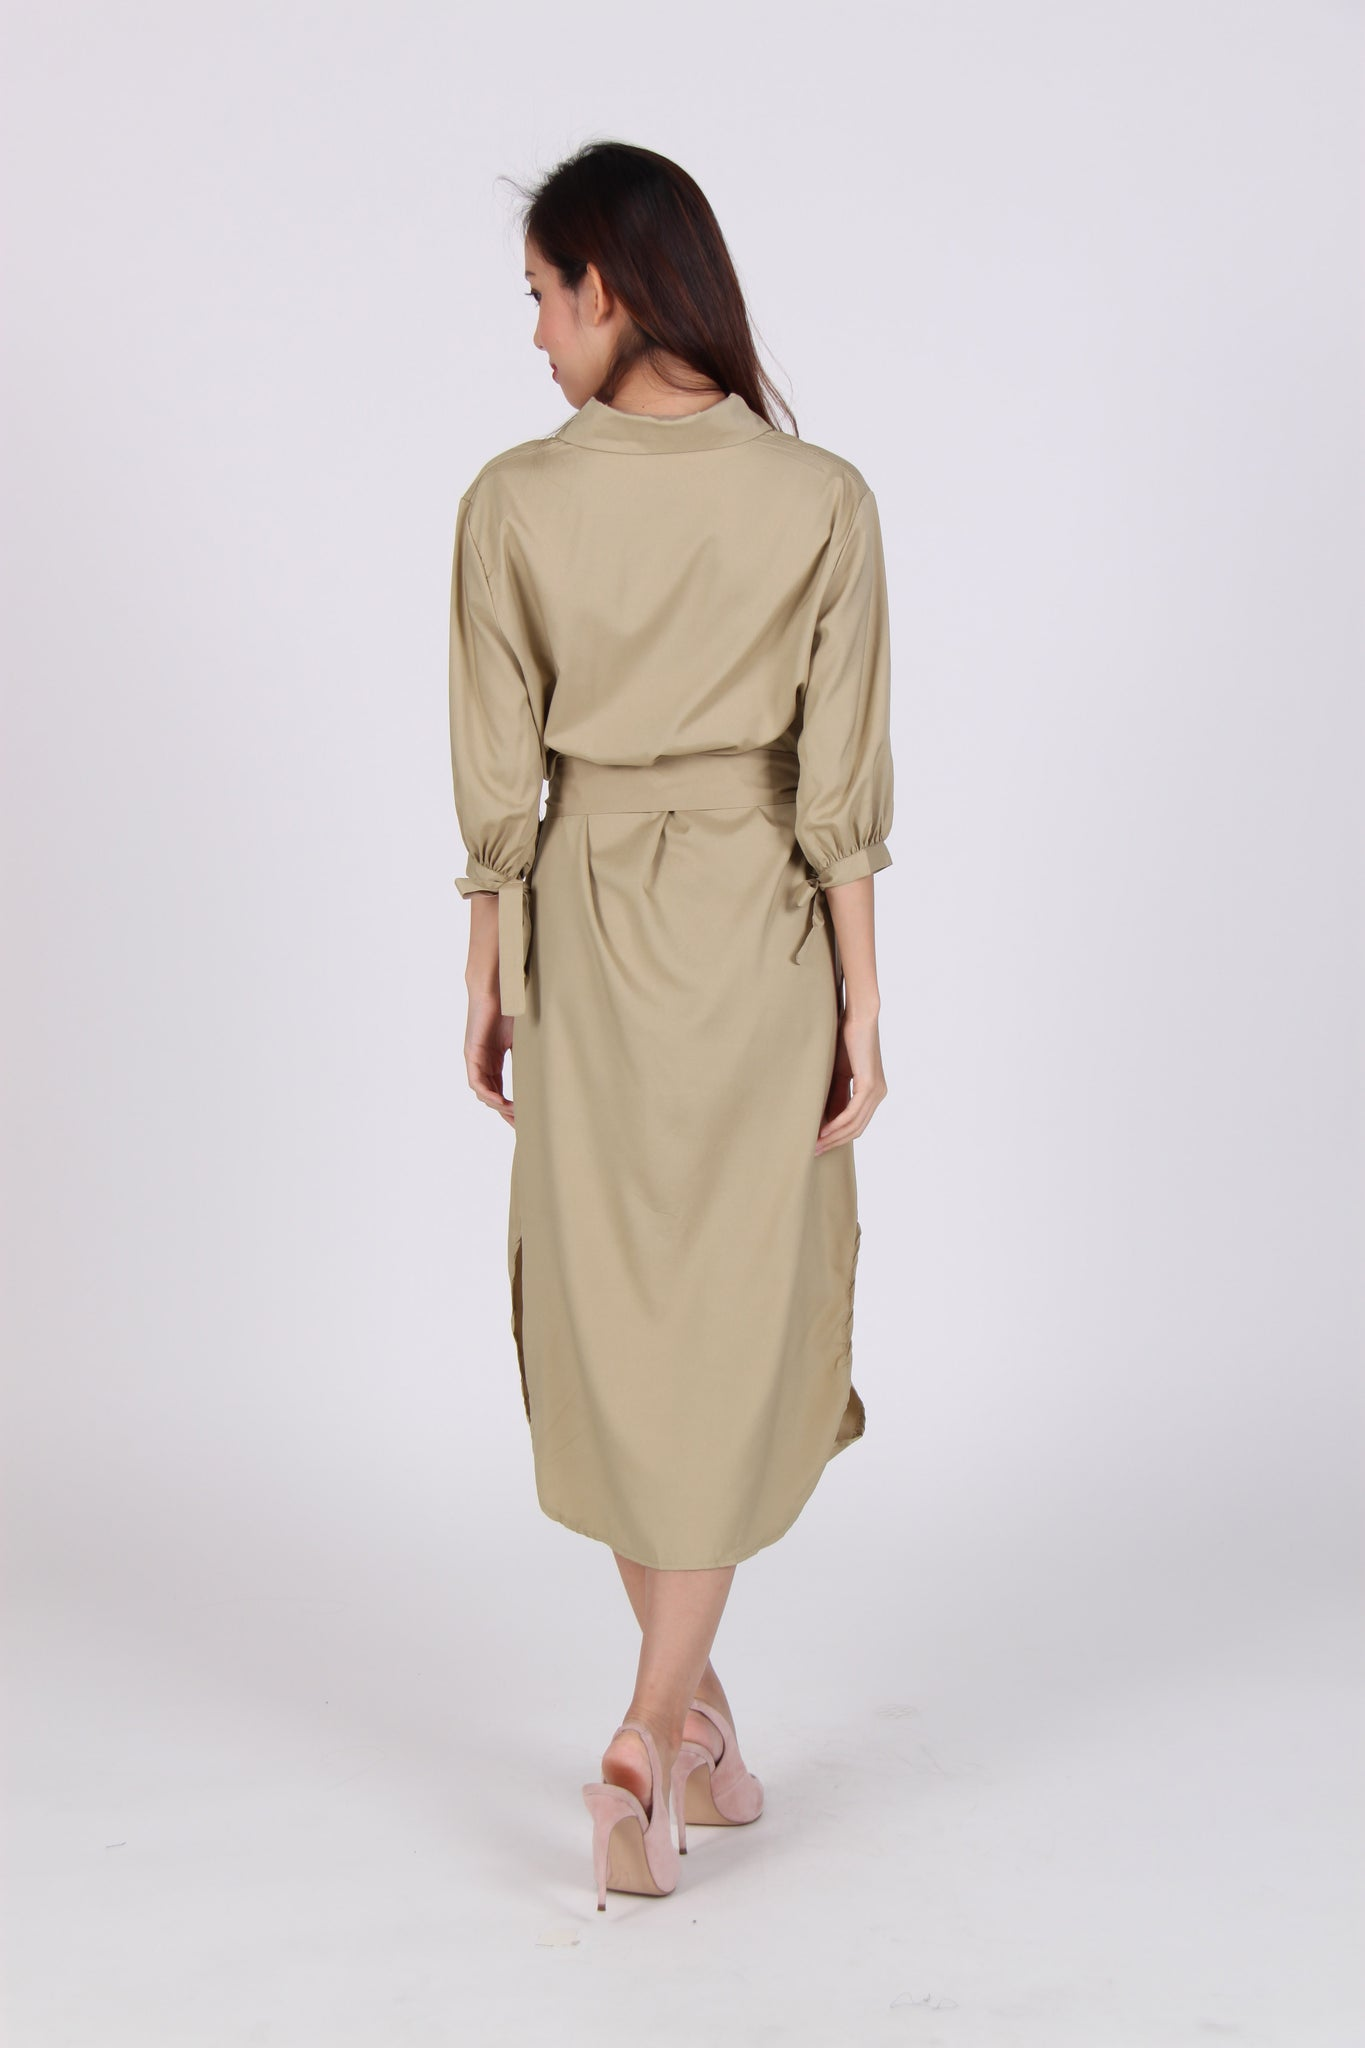 Pocket Sleeve Tie Midi Shirt Dress in Beige